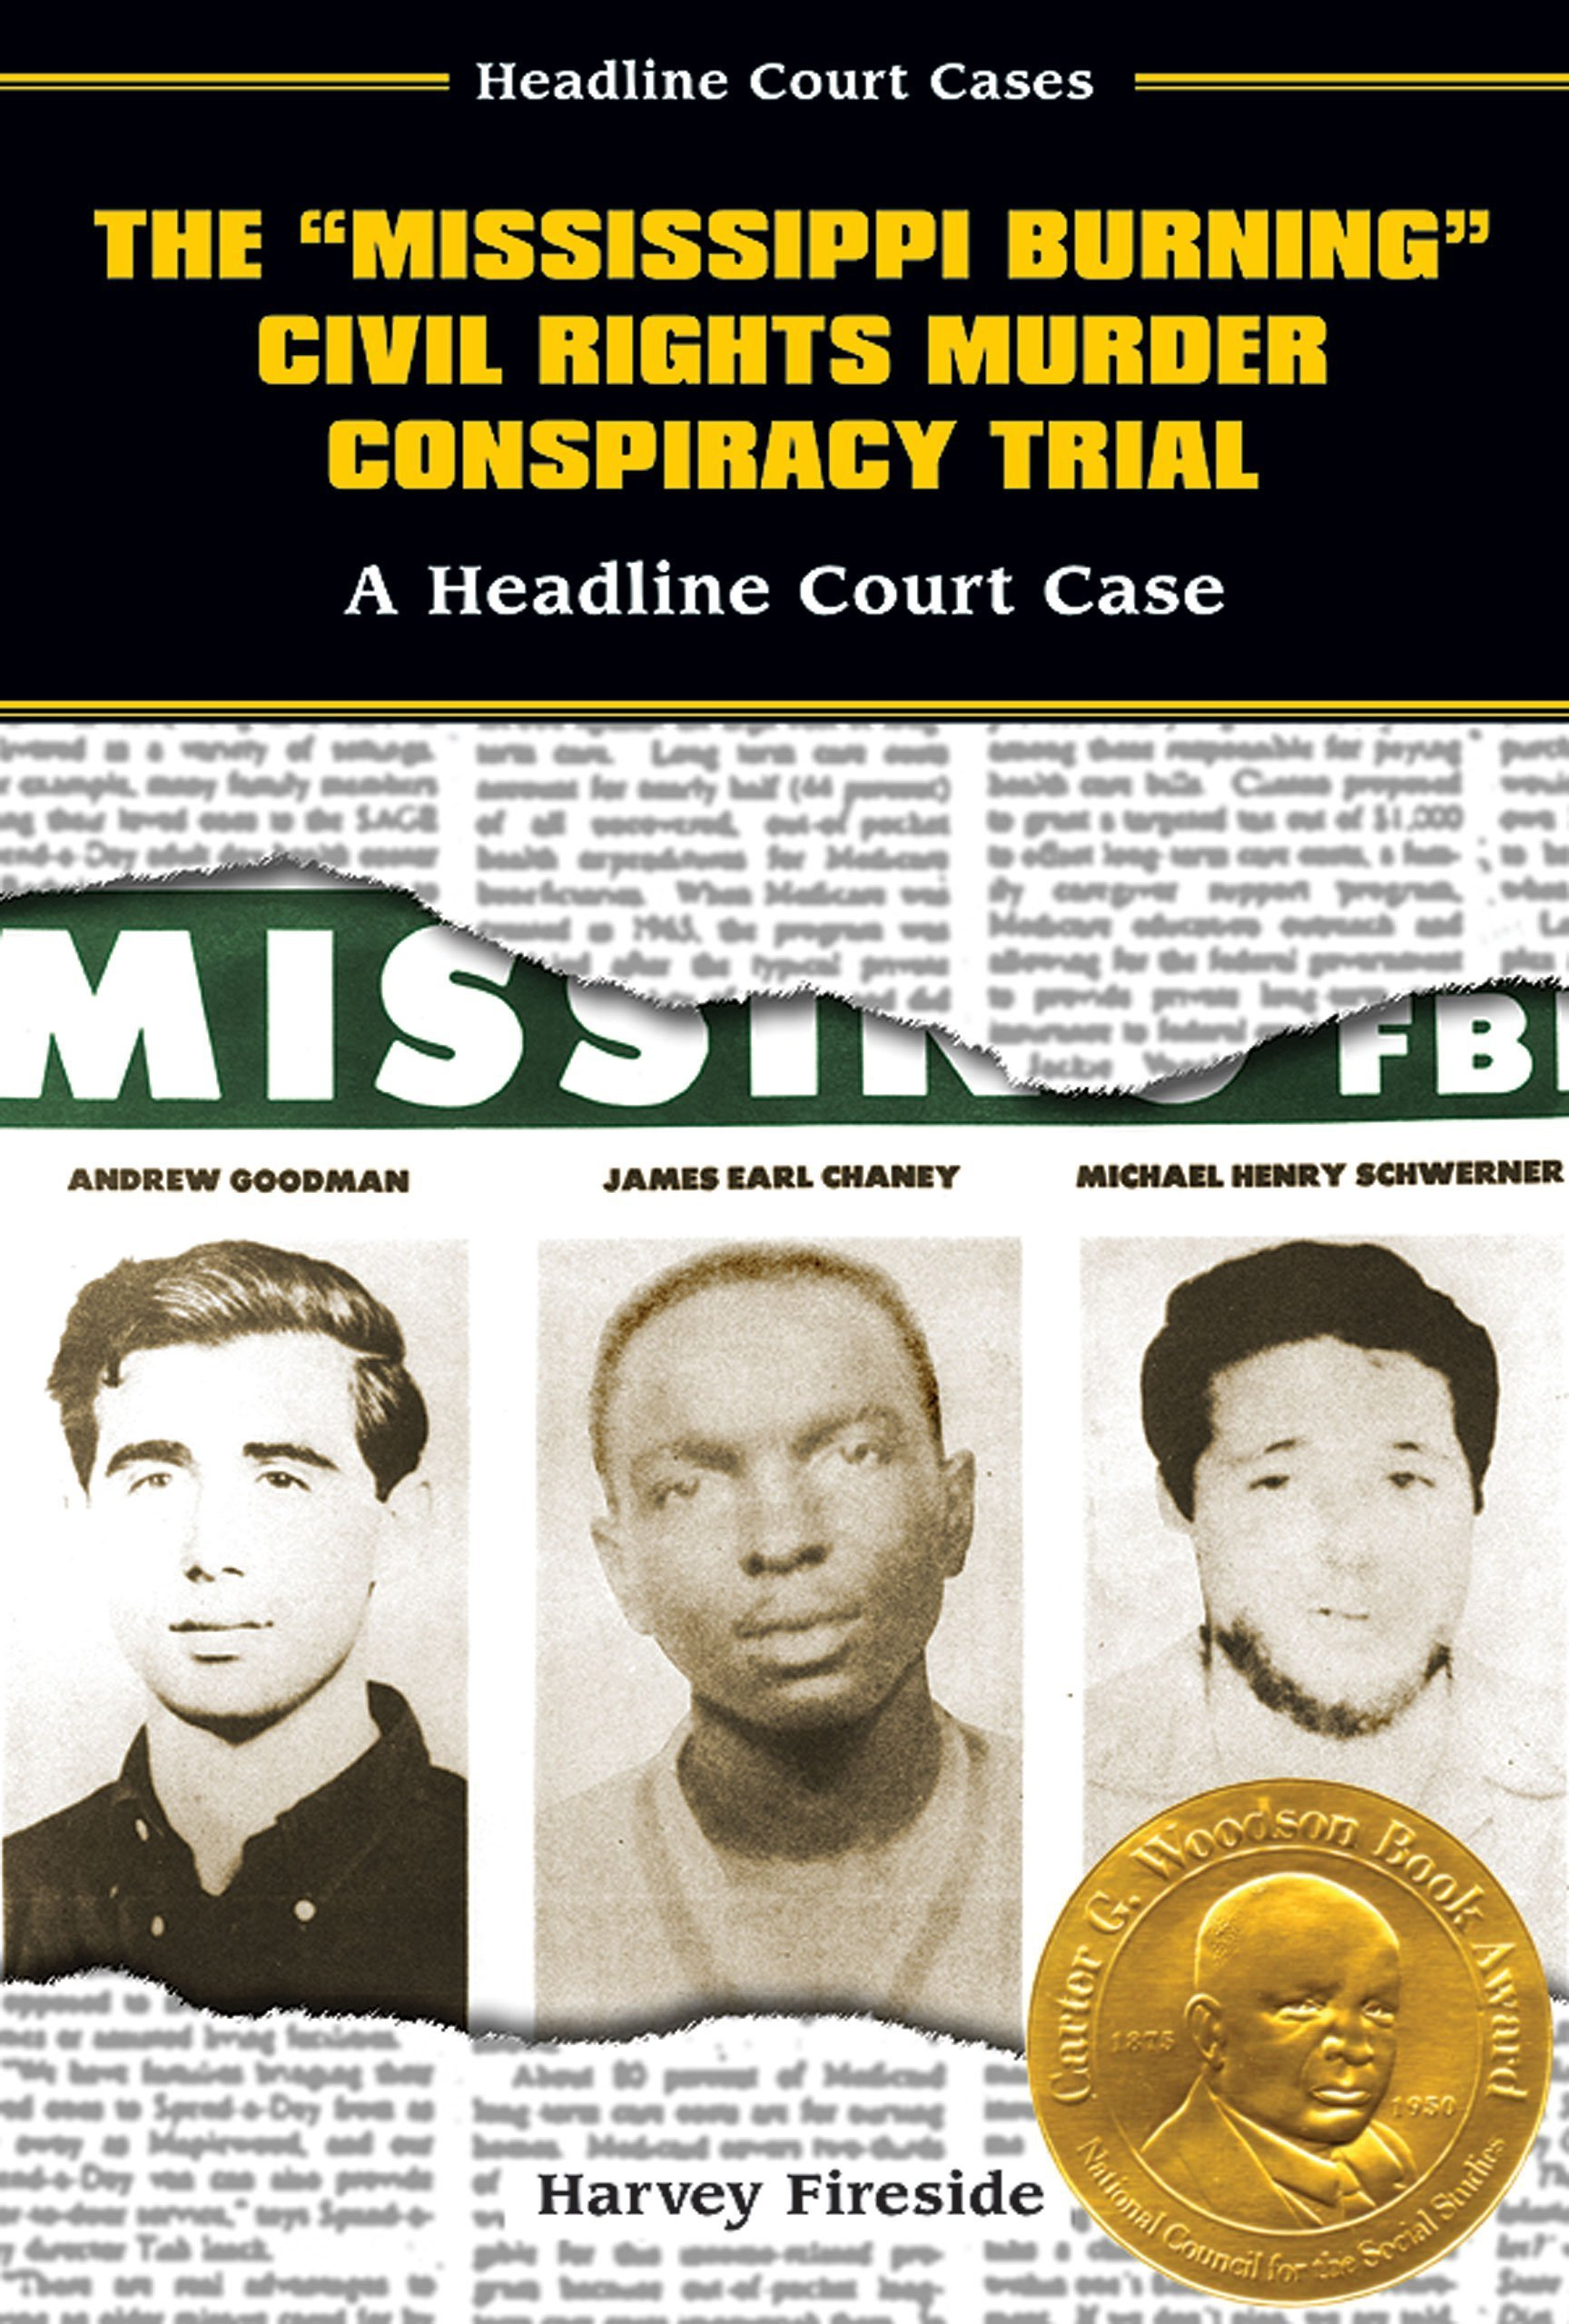 The Mississippi Burning Civil Rights Murder Conspiracy Trial: A Headline Court Case (Headline Court Cases) PDF